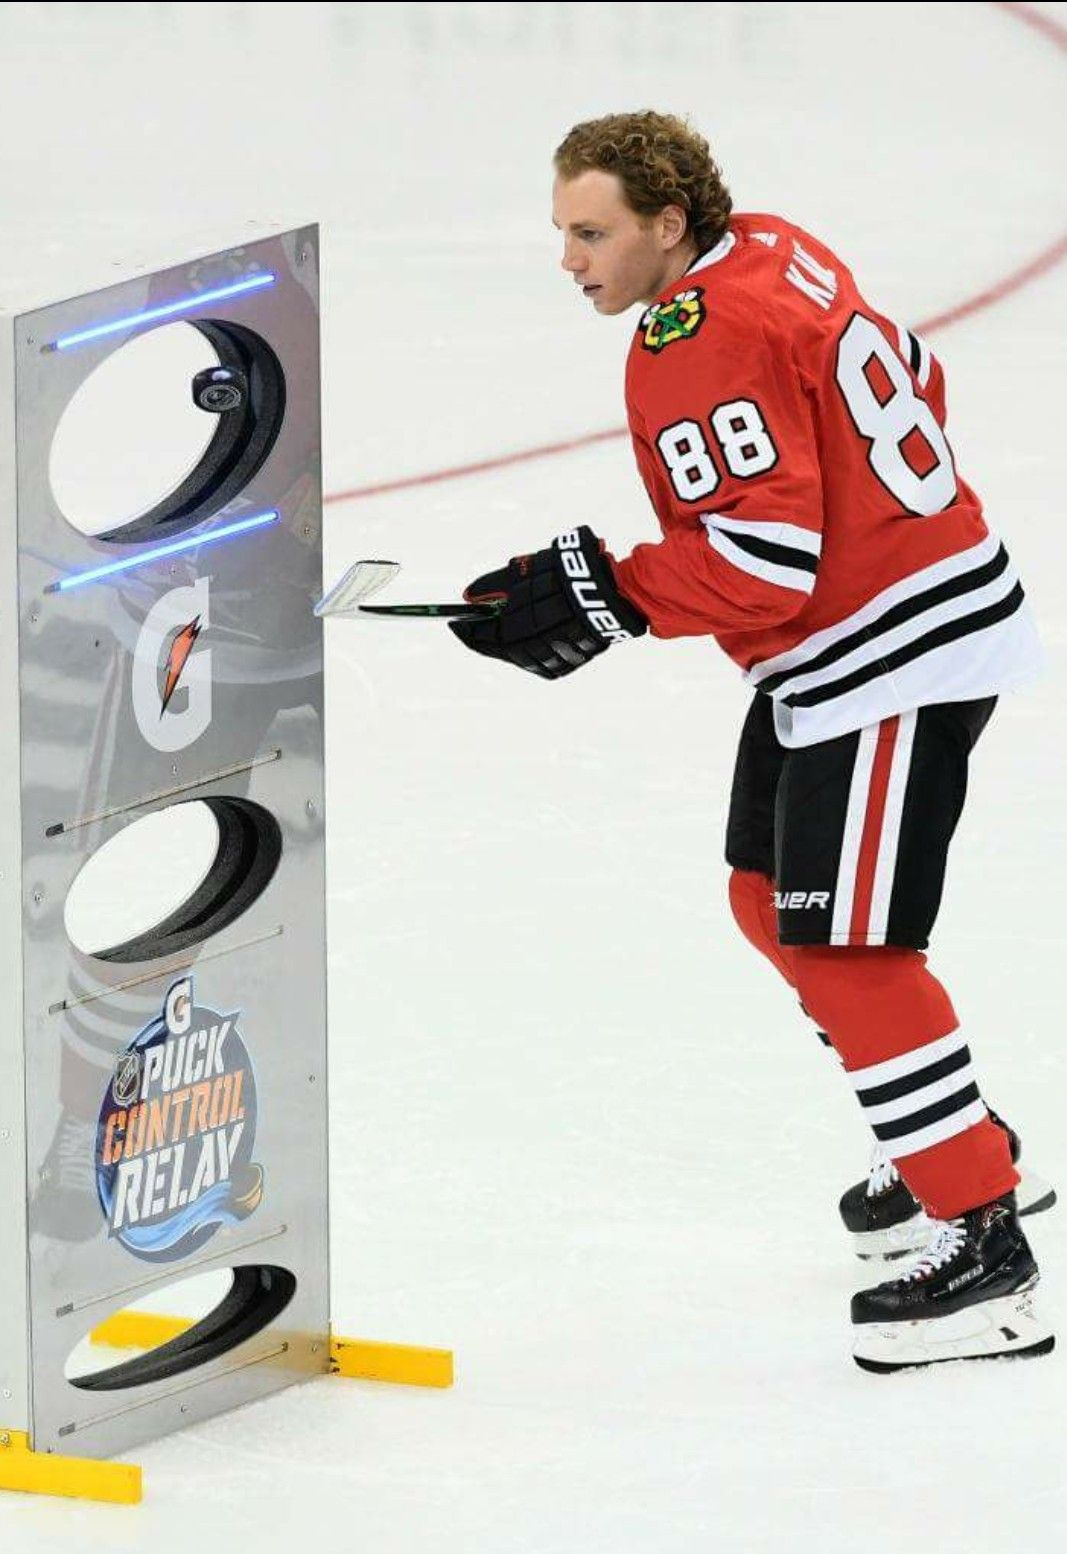 Patrick Kane 2018 Asg Skills Competition Chicago Blackhawks Hockey Patrick Kane Blackhawks Hockey